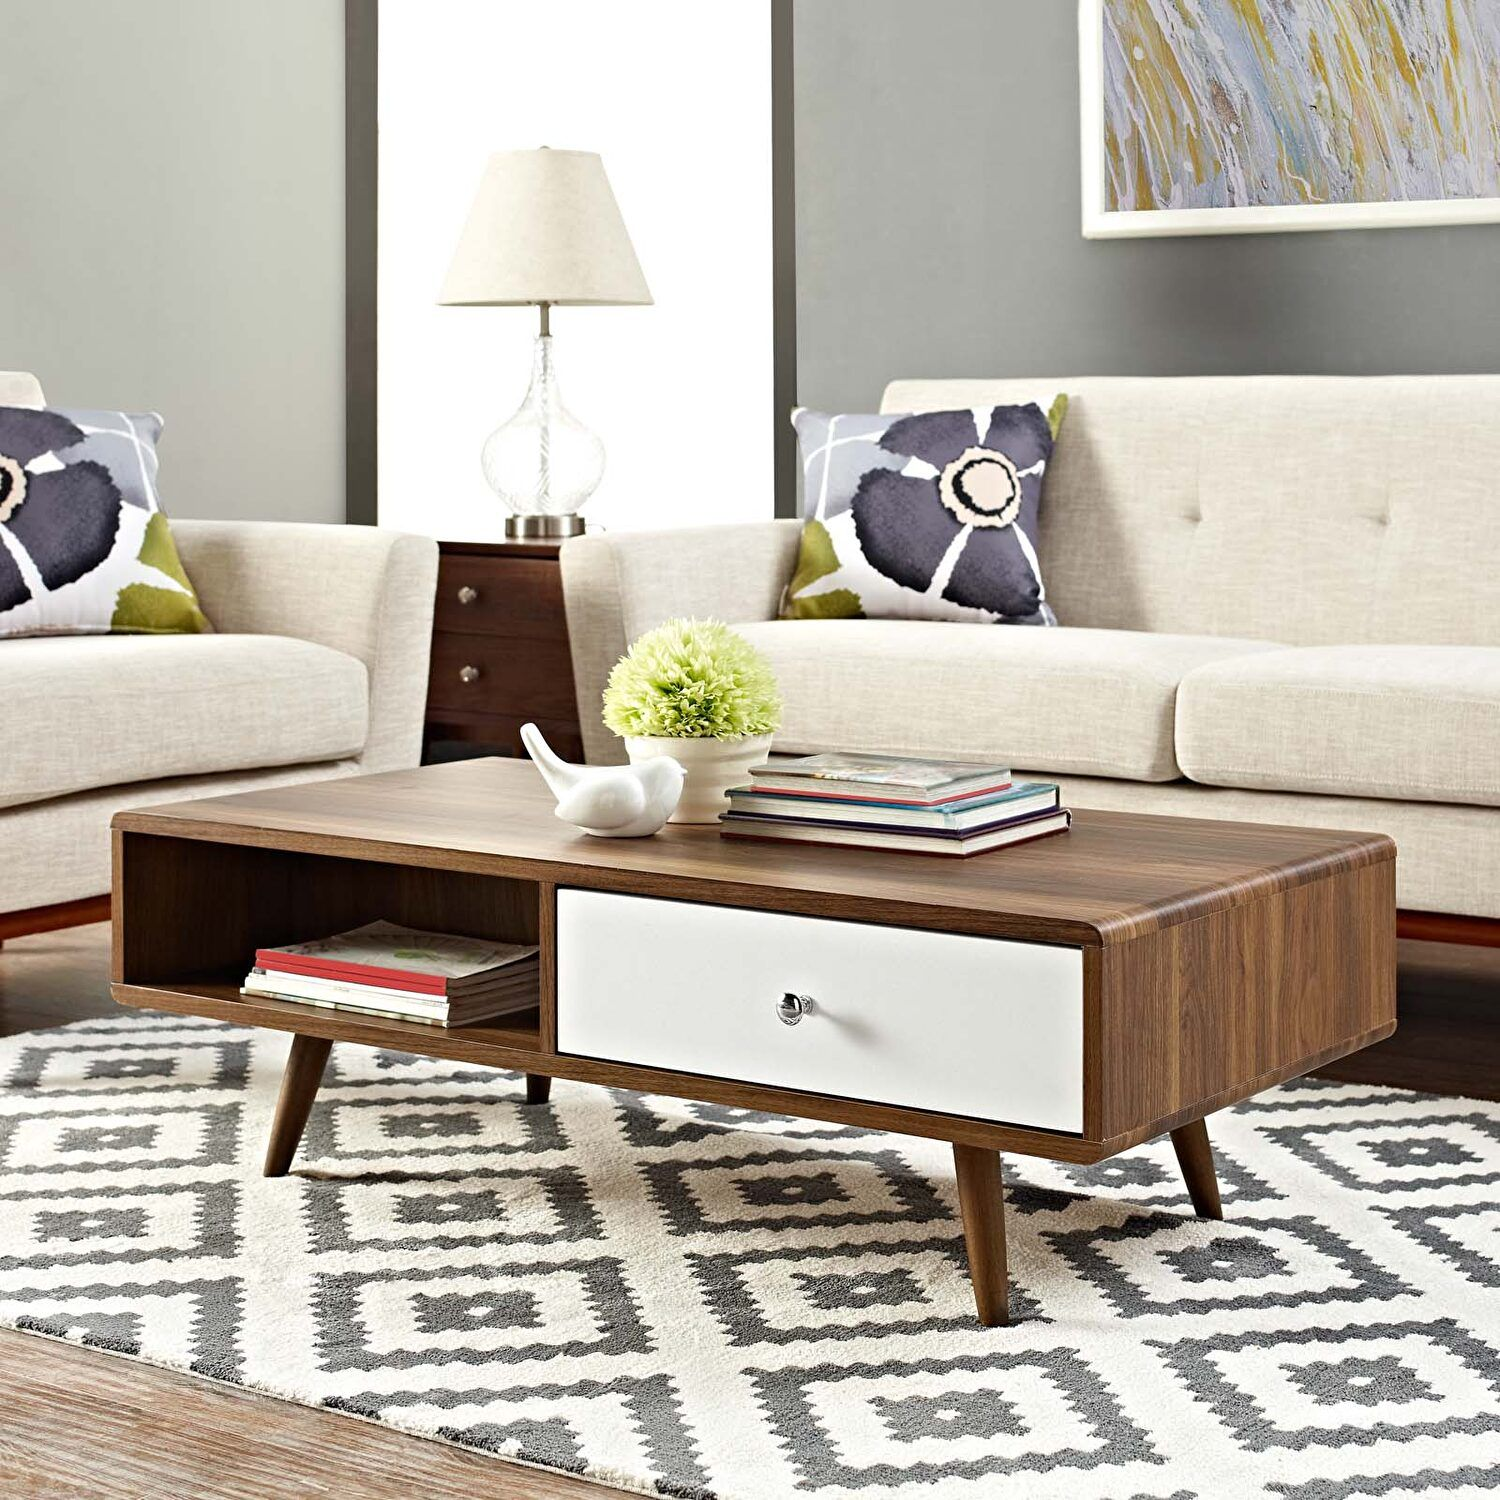 Transmit Walnut White Coffee Table Eei 2528 Wal Whi Modway Furniture Coffee Tables Mid Century Modern Coffee Table Mid Century Coffee Table Contemporary Coffee Table [ 1500 x 1500 Pixel ]